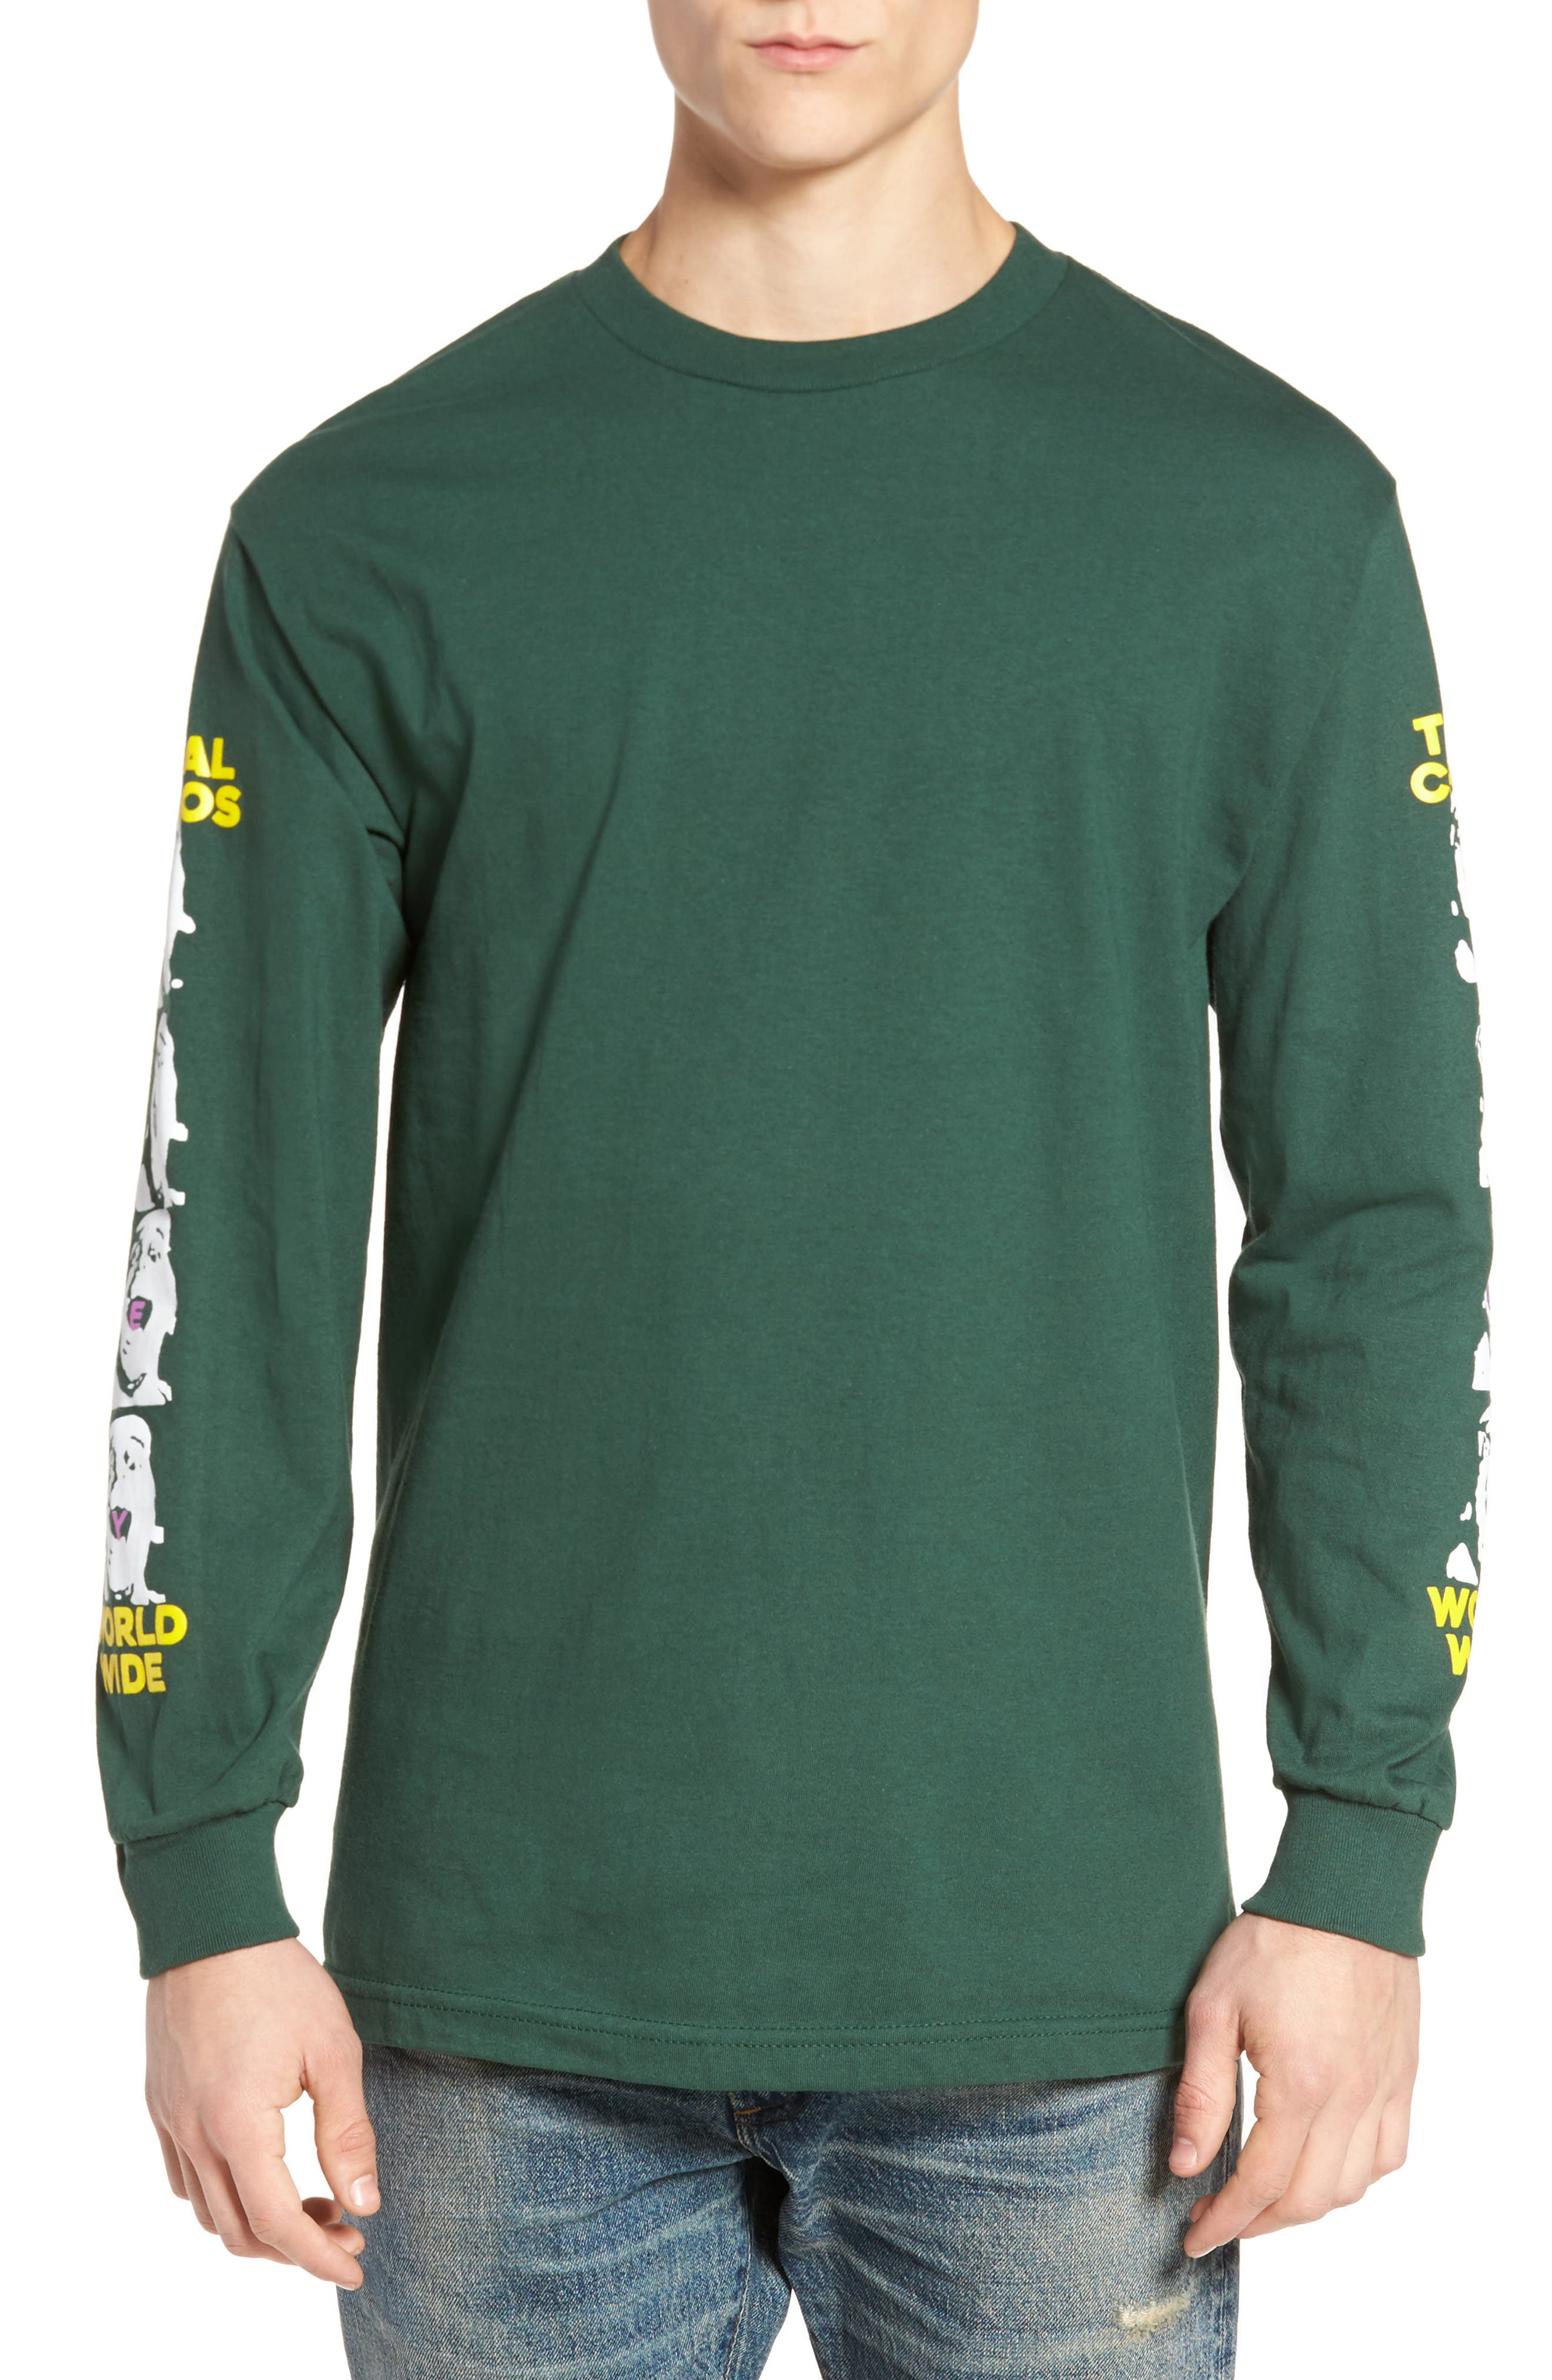 Total Chaos T-Shirt,                             Main thumbnail 1, color,                             Forrest Green